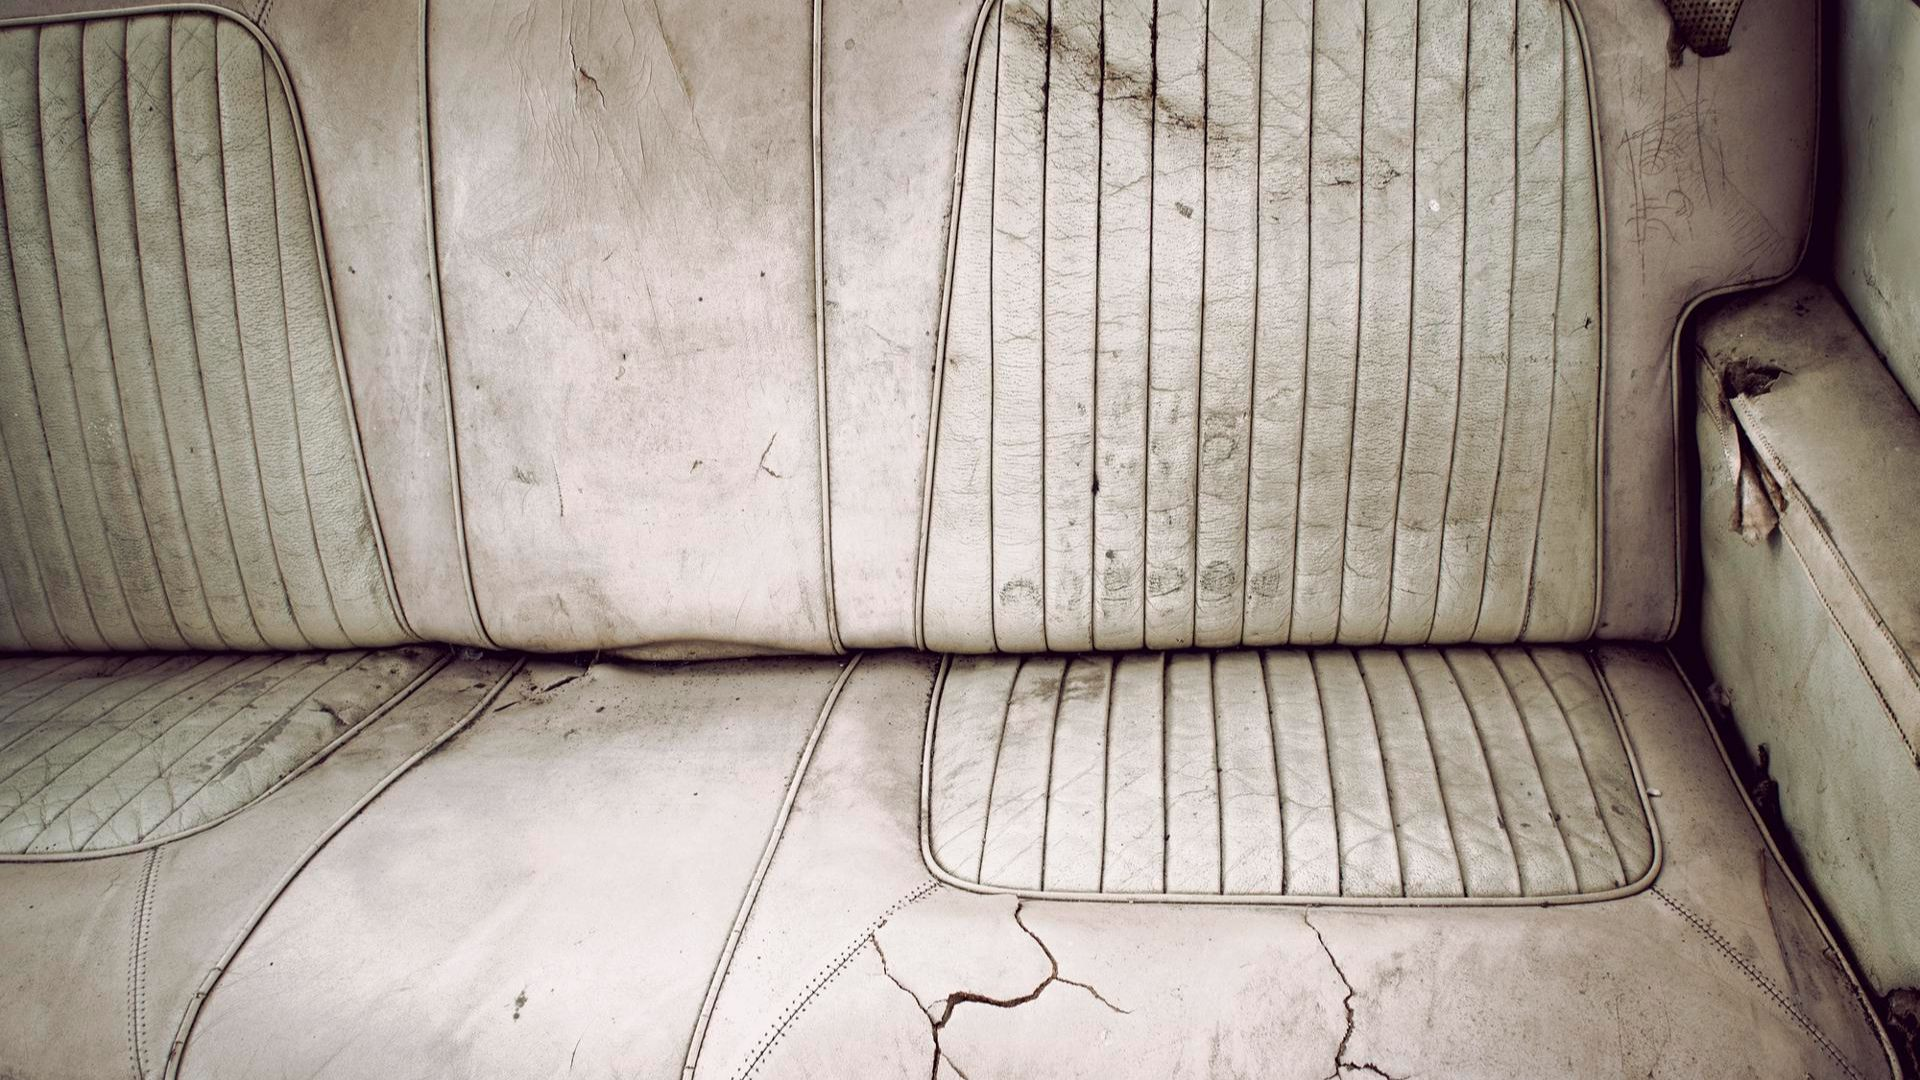 Cracked leather seats.